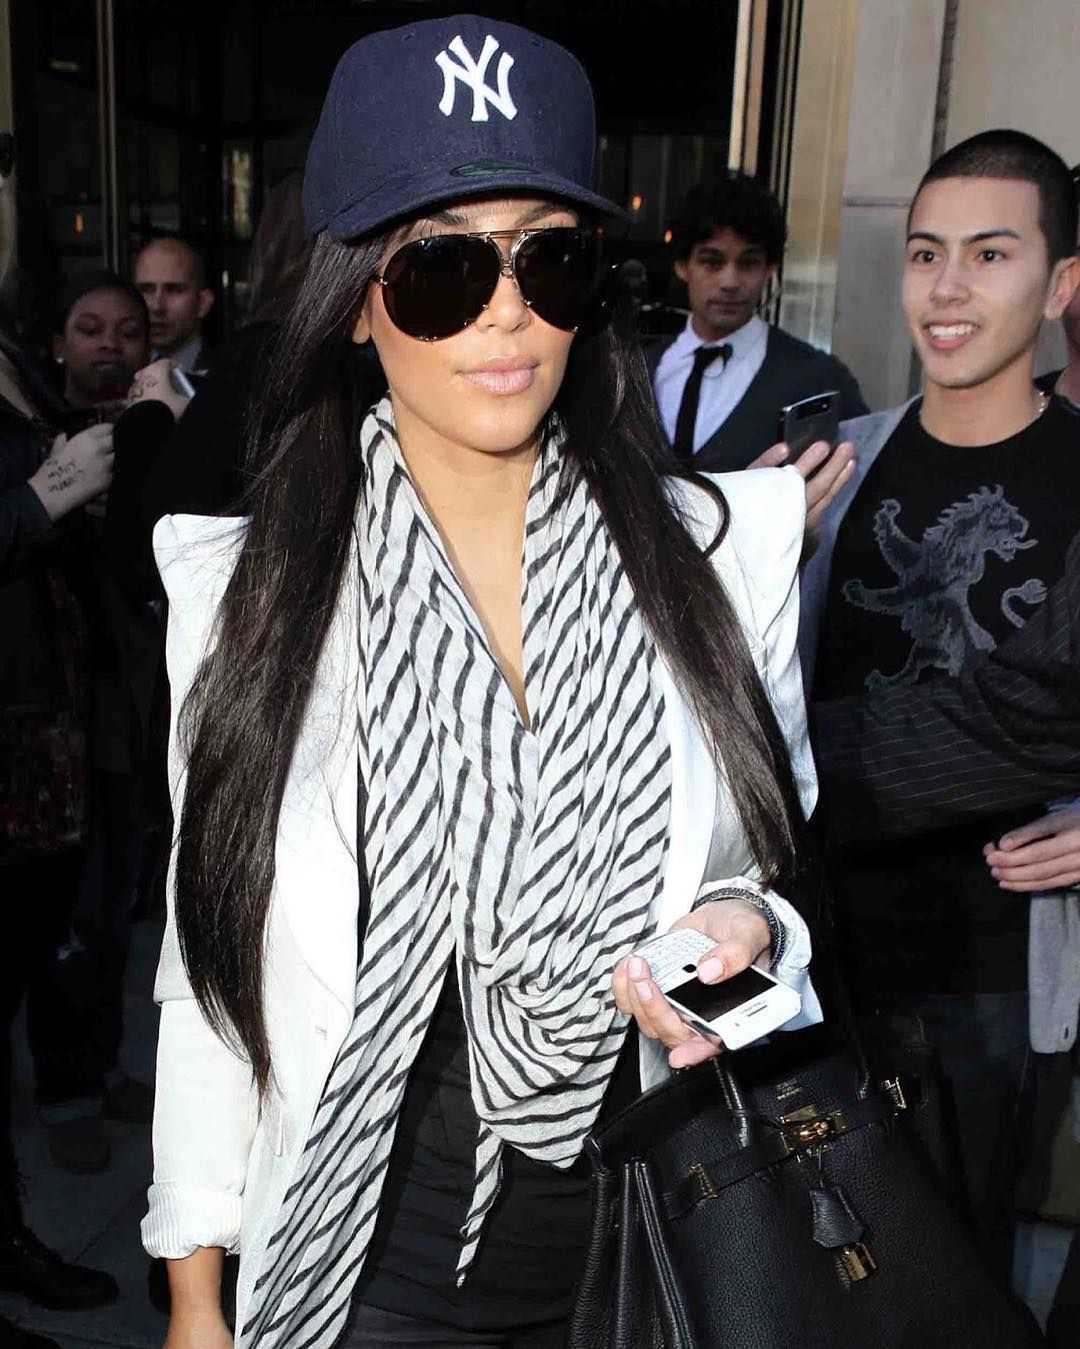 146ecd4a0a Look at these Porsche Sunglasses on Kim Kardashian. Don t you just love  them  Wouldn t you want them